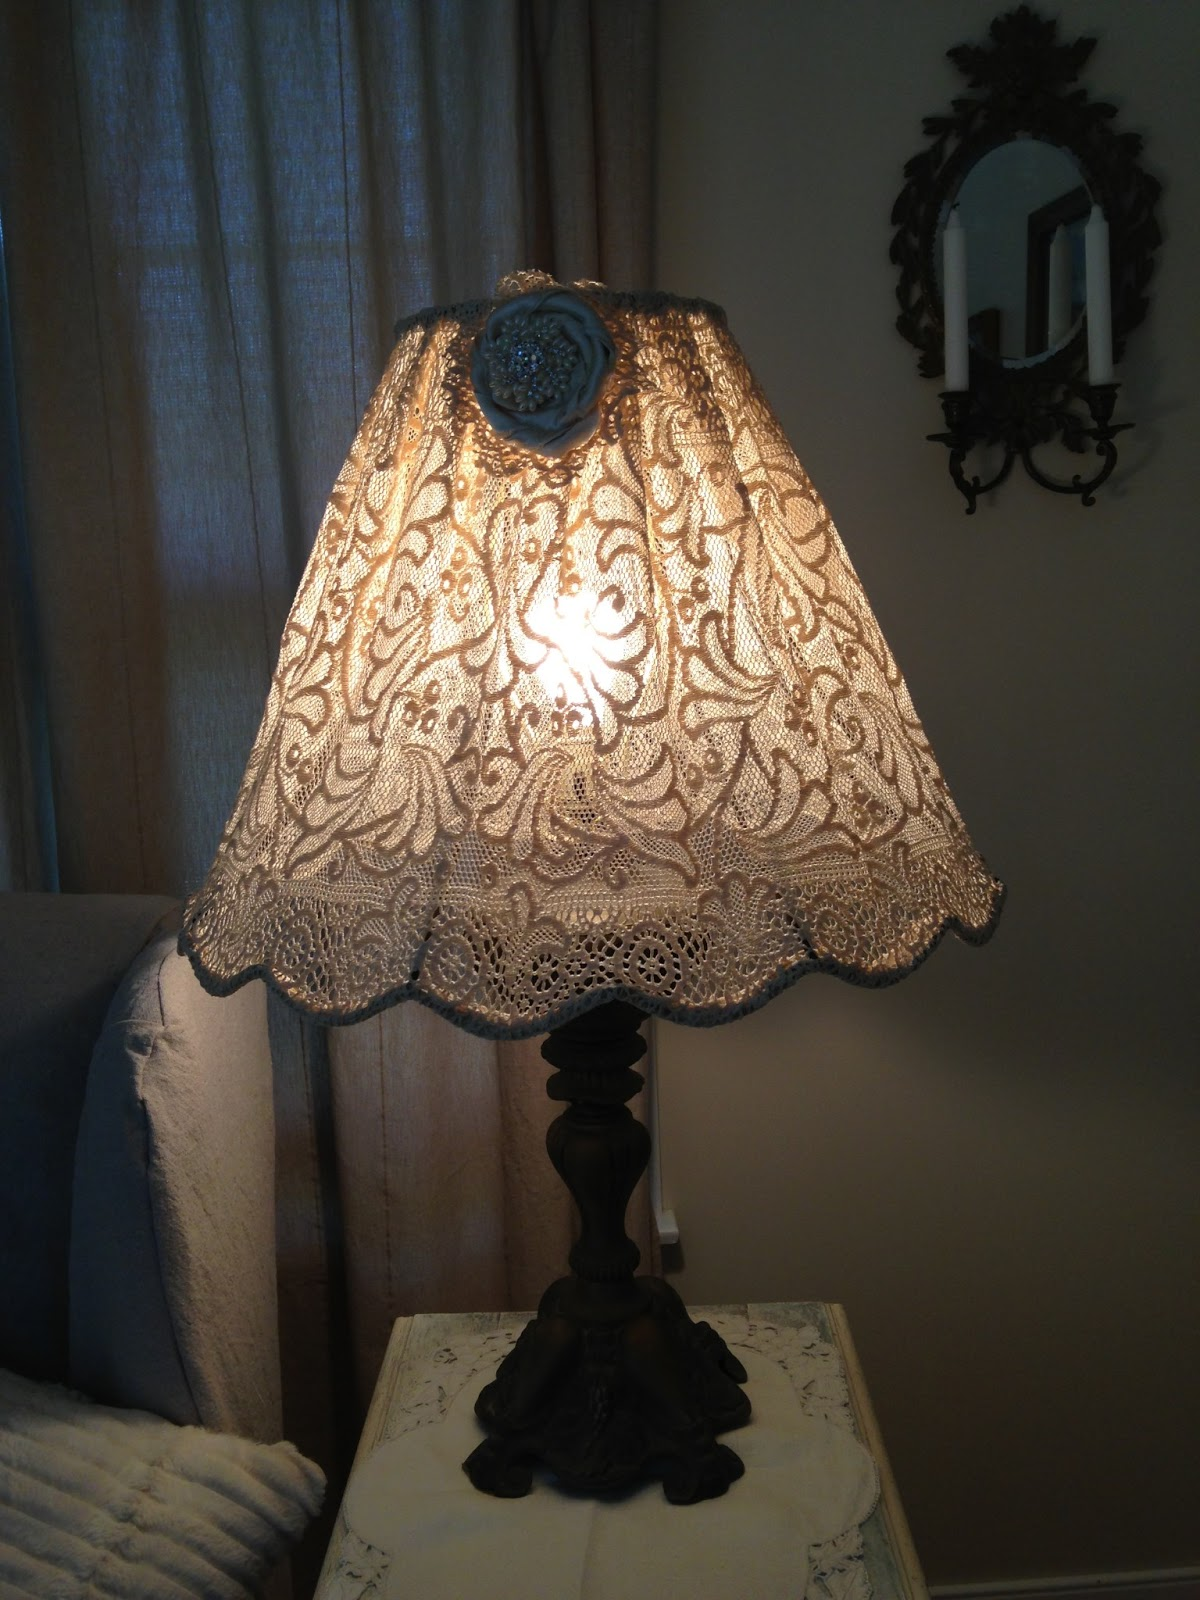 Restored treasures too diy lampshade using an antique lace tablecloth aloadofball